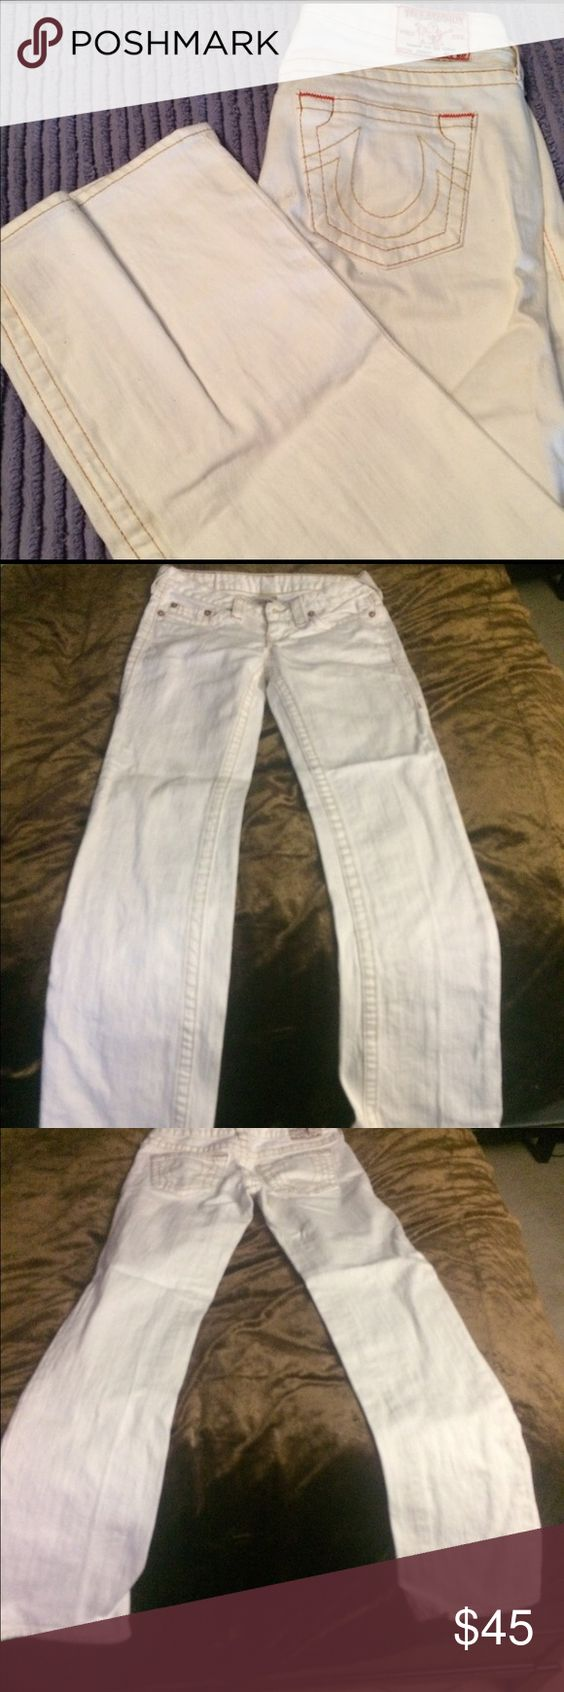 White True Religion Jeans White straight leg boot cut True Religion jeans. No stains. Great condition True Religion Jeans Boot Cut